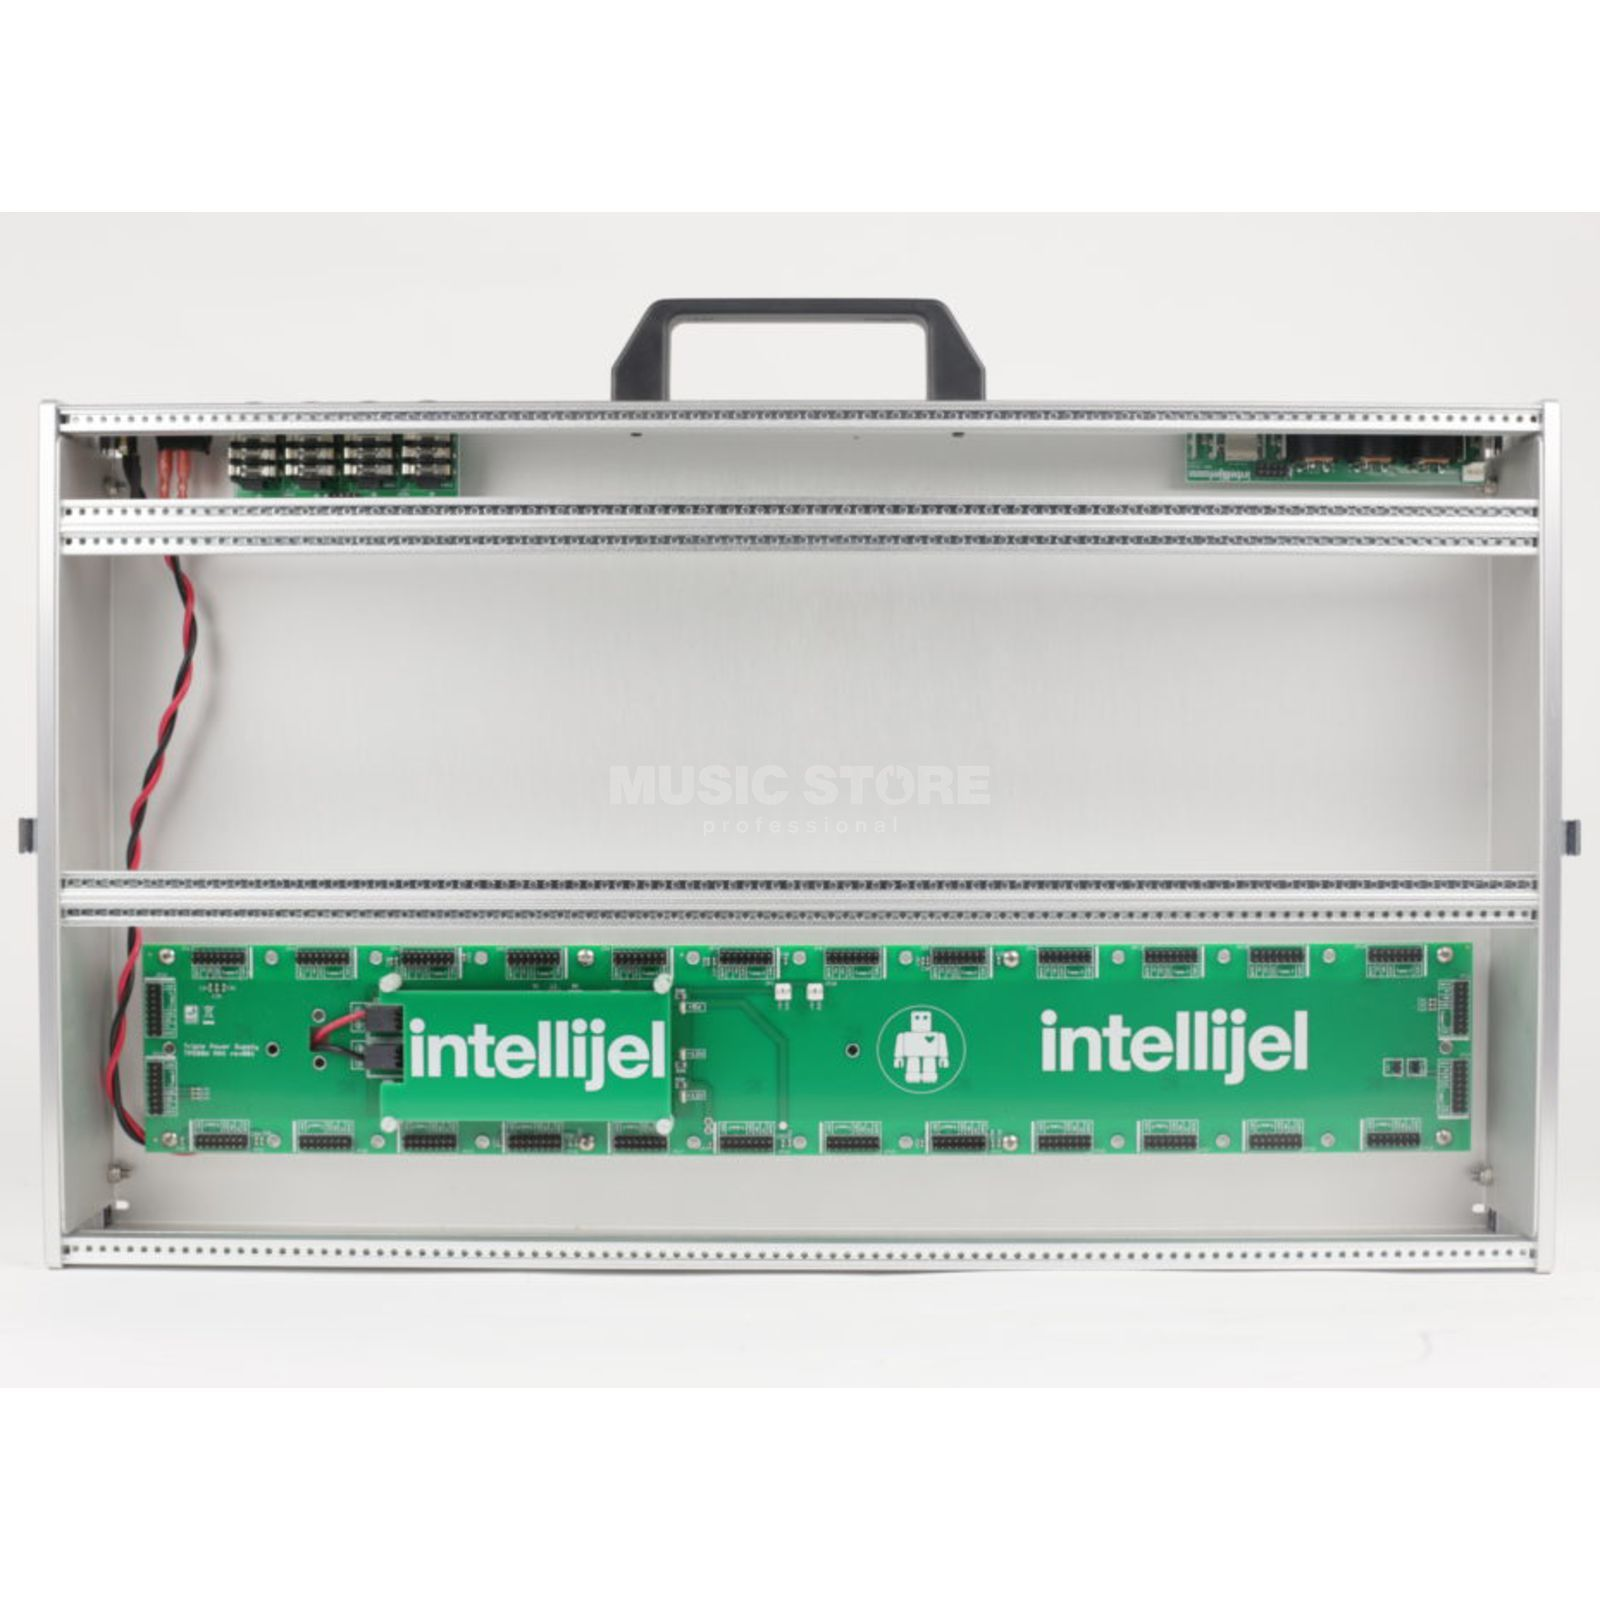 Intellijel 7U Performance Case 84 TE Product Image